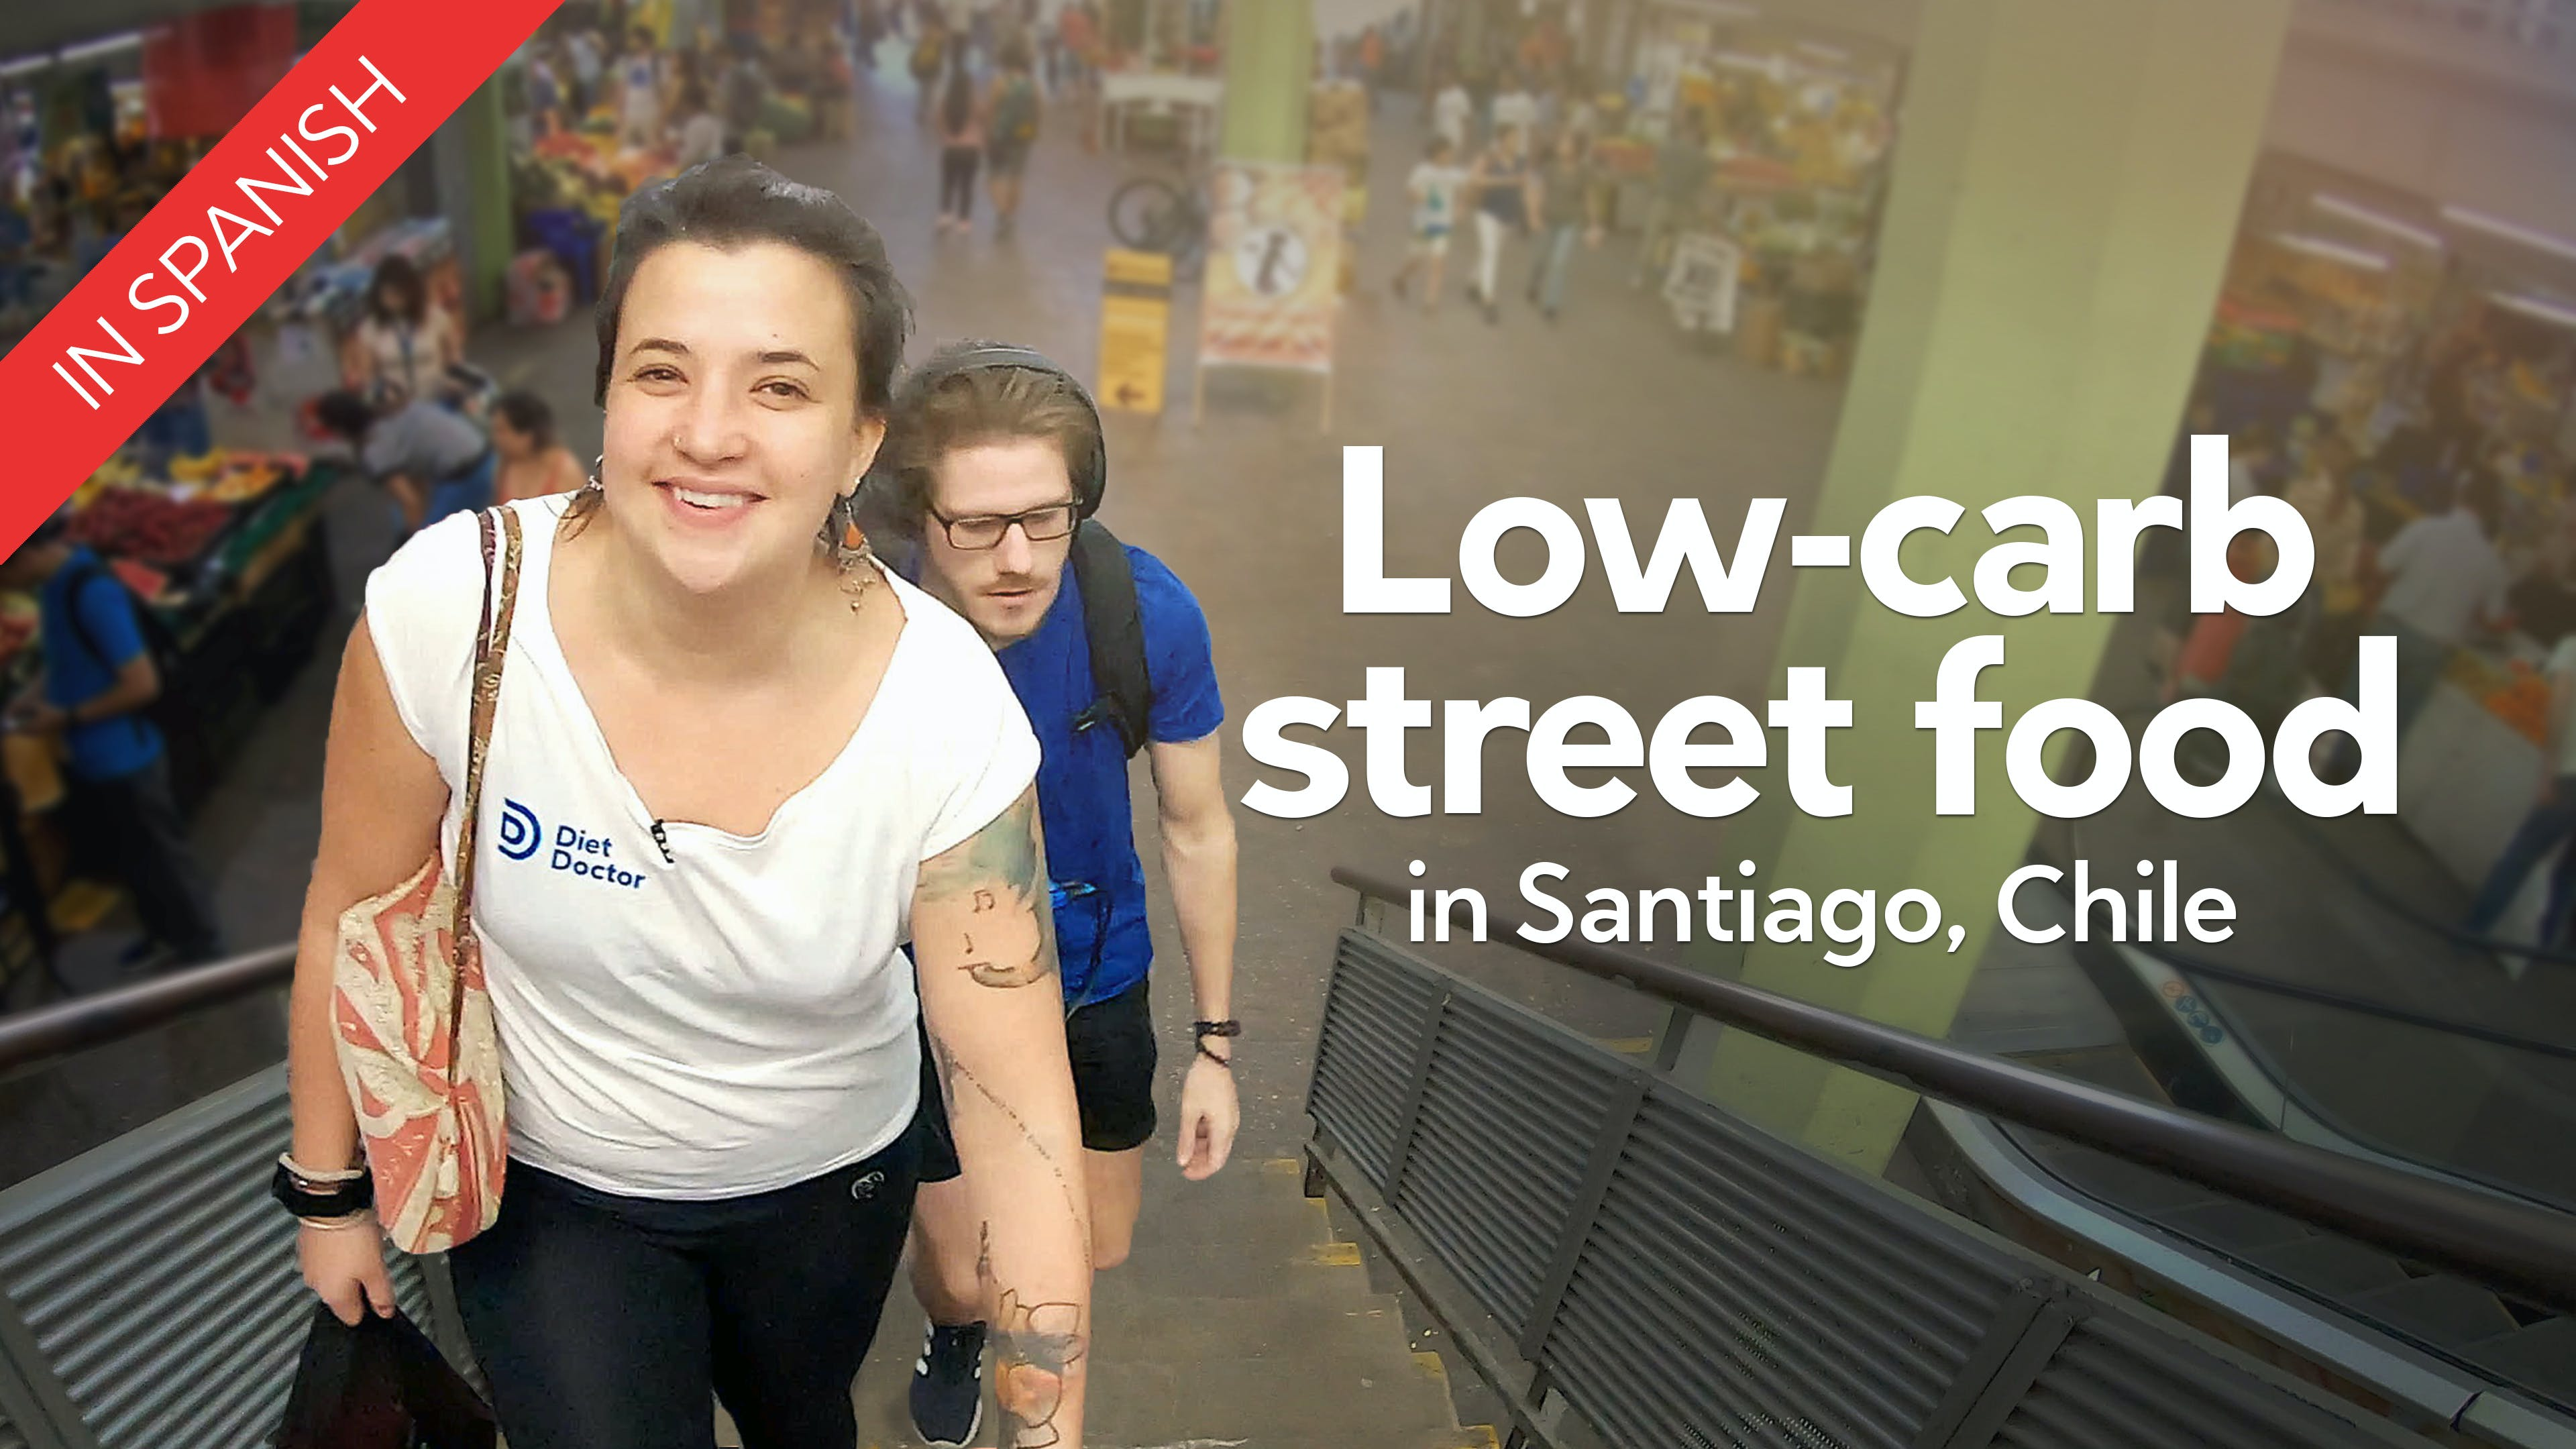 Low-carb street food in Santiago, Chile